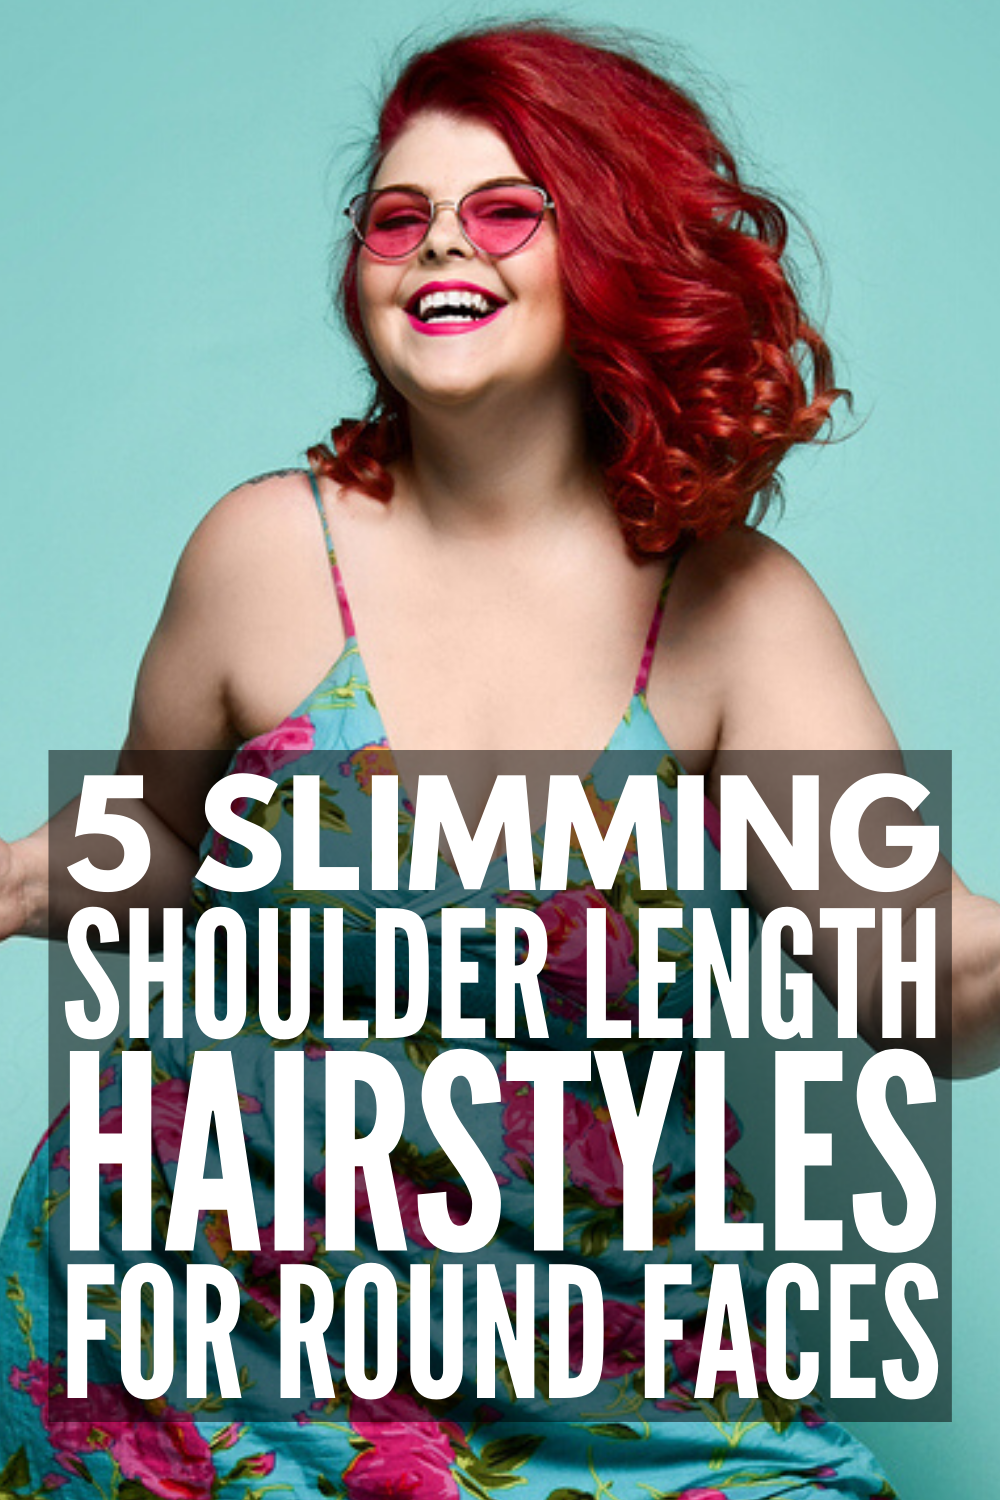 20+ Slimming haircuts for chubby faces inspirations